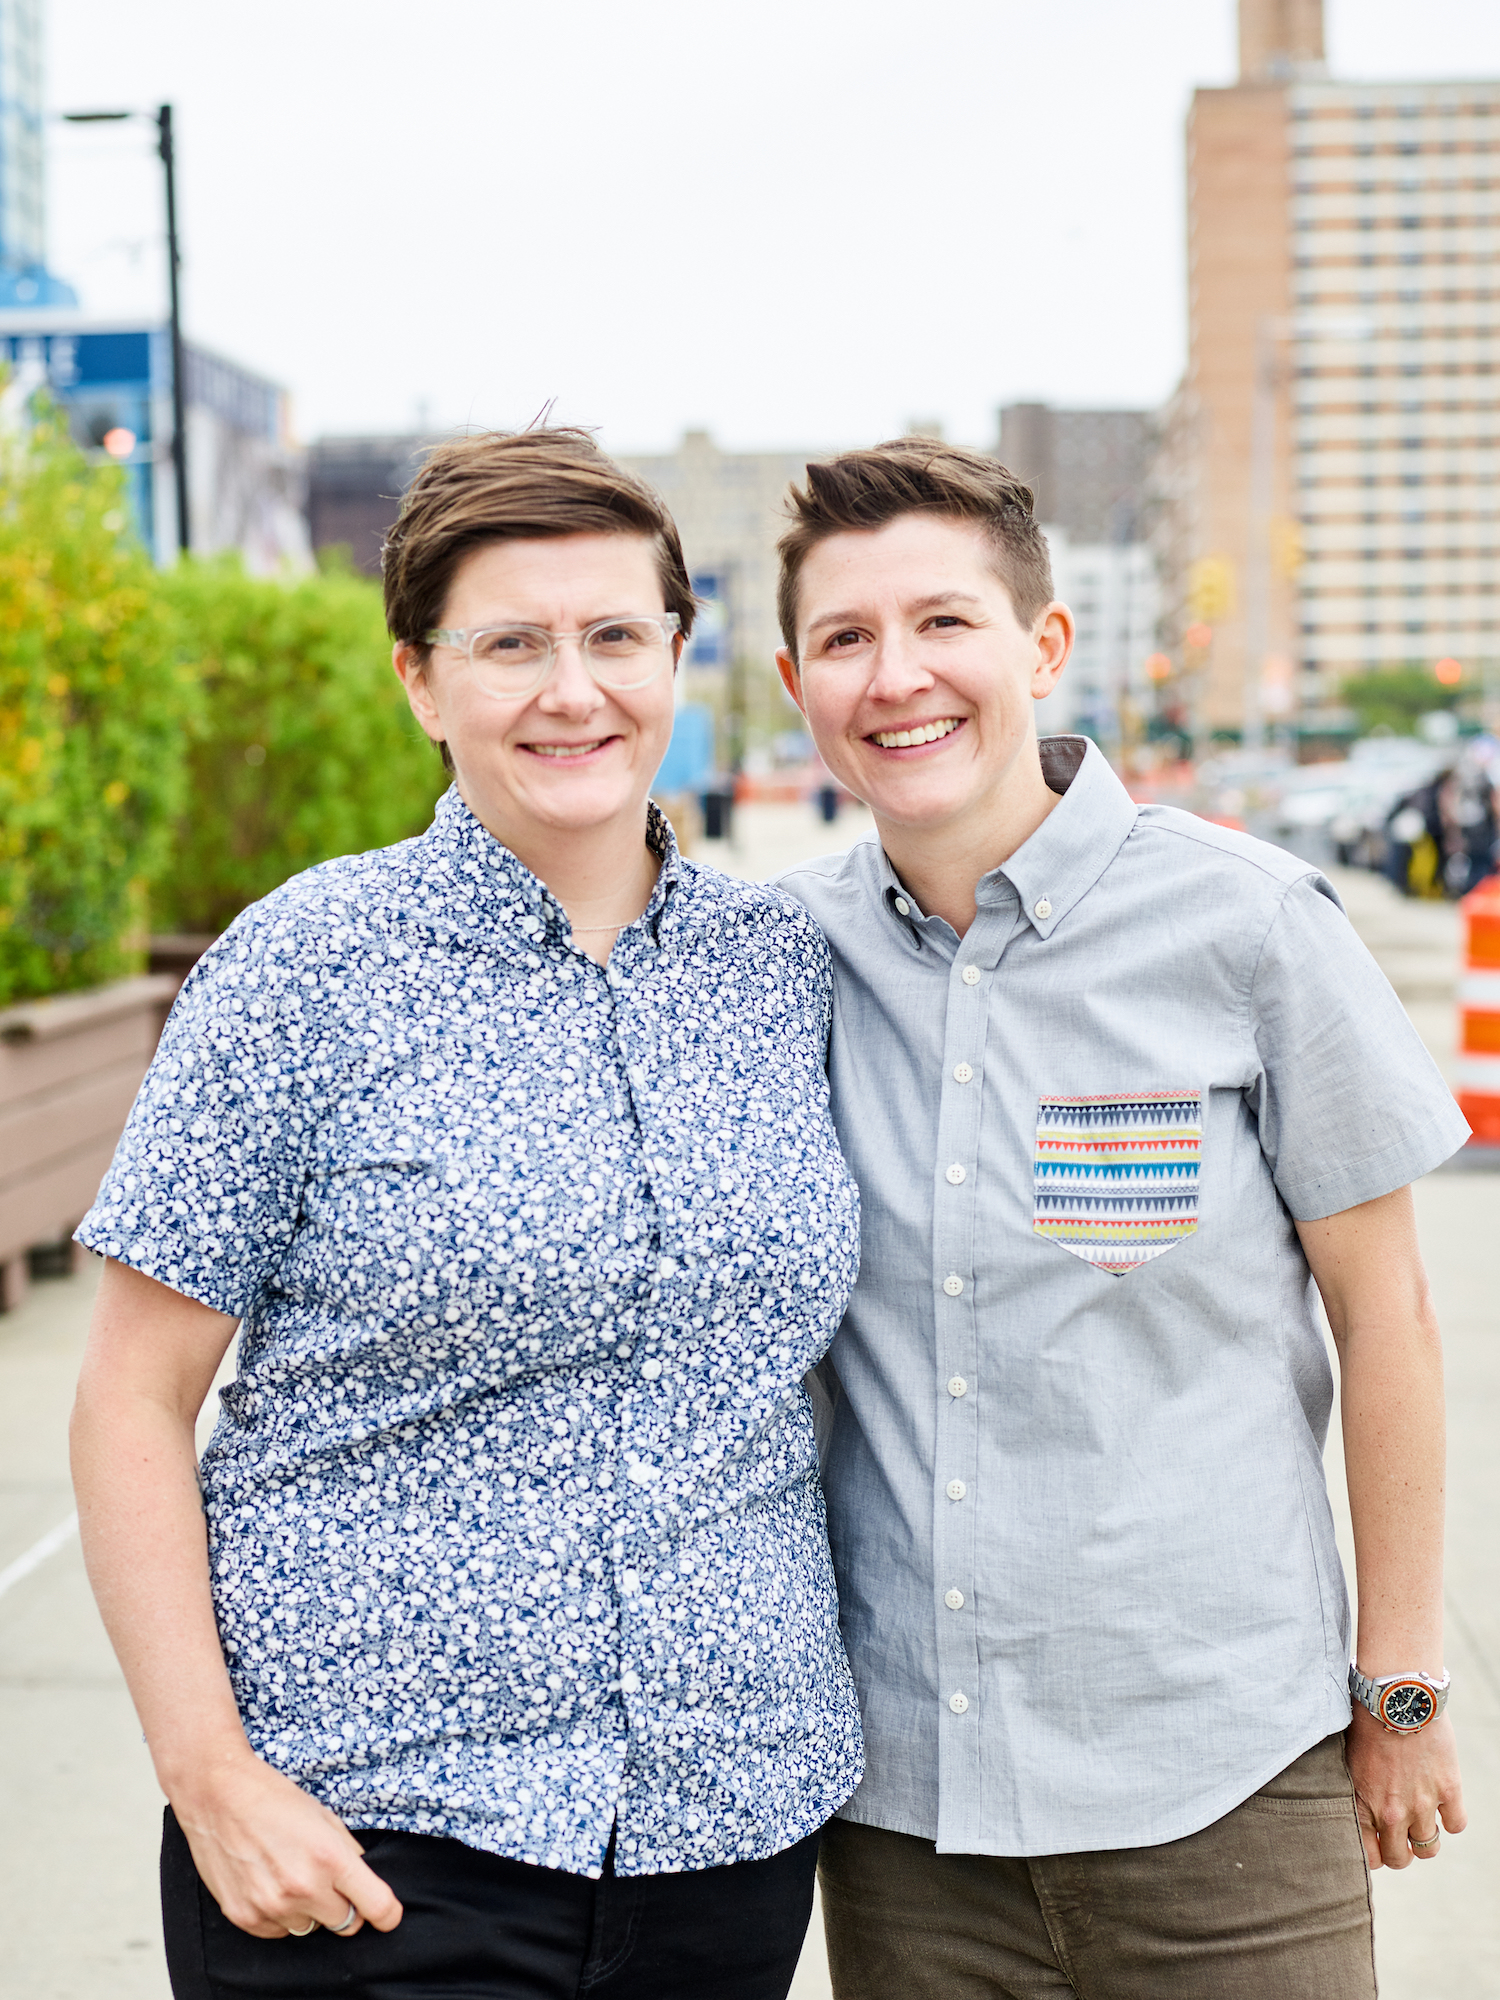 Founders Laura (left) and Kelly (right)